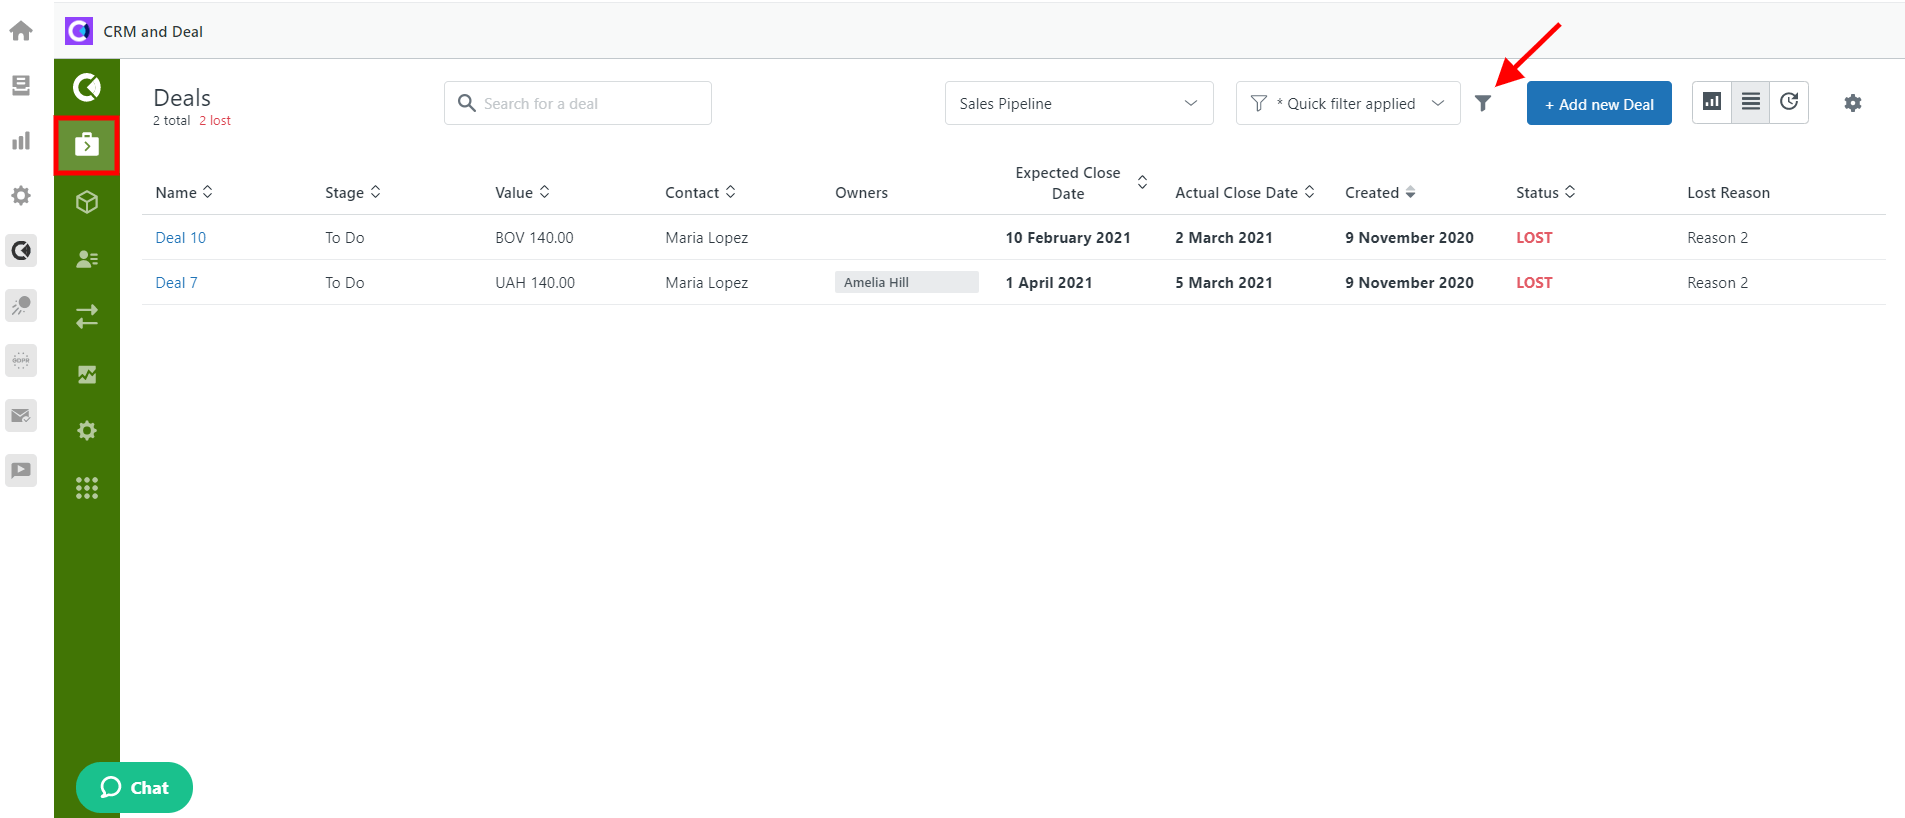 CRM And Deals For Zendesk View